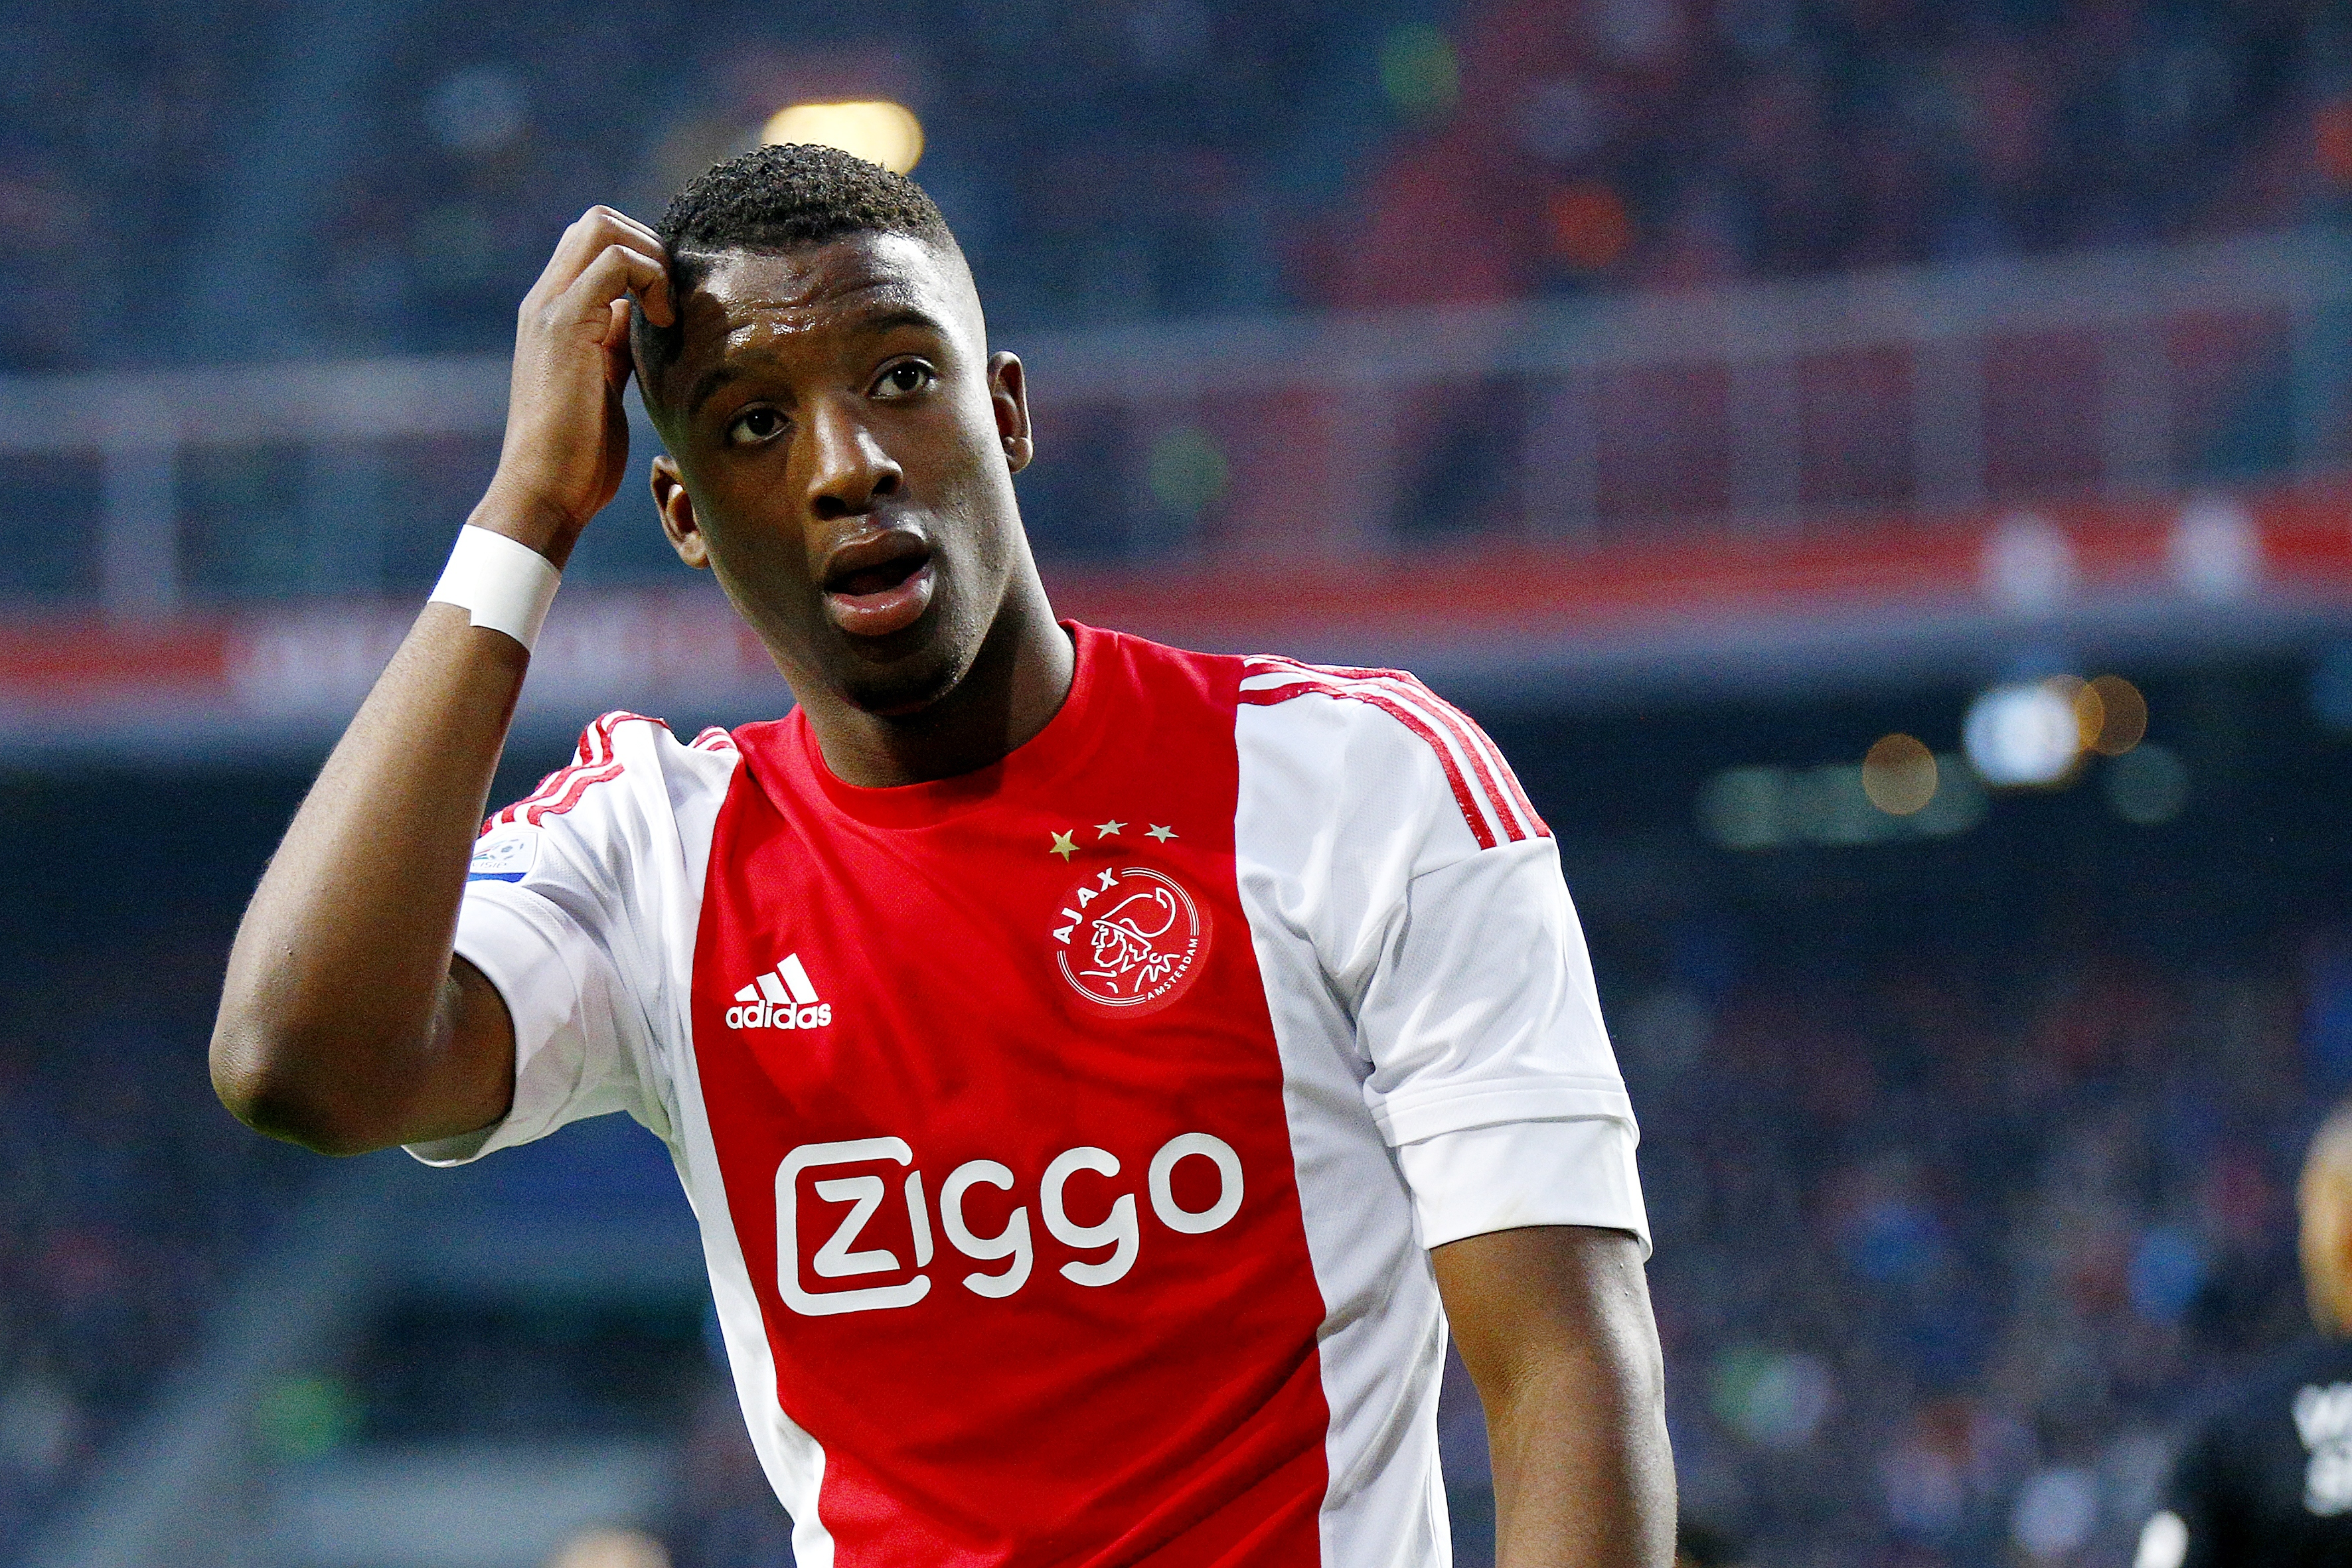 Manchester United launch transfer offer for Riechedly Bazoer